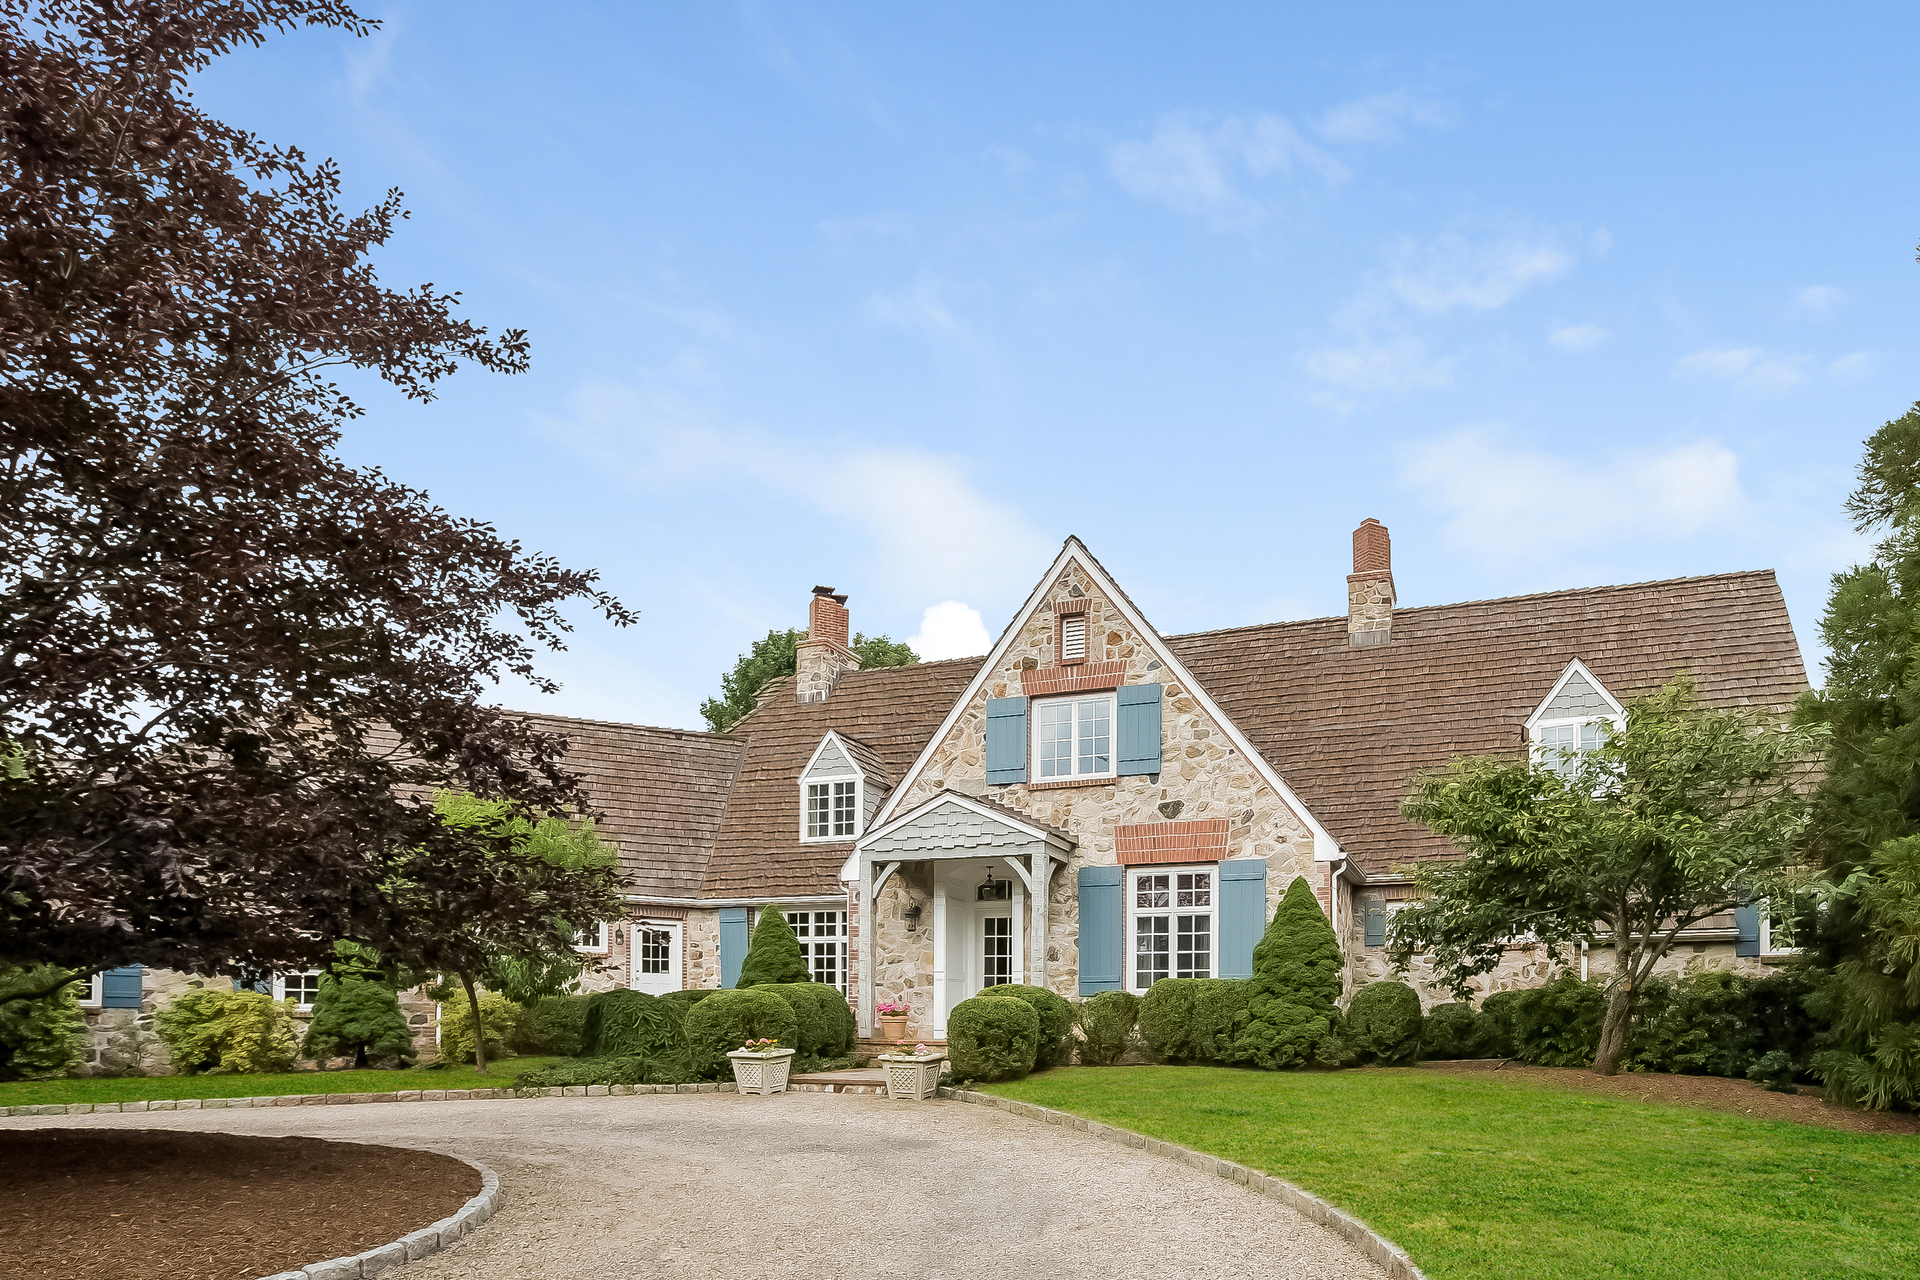 Single Family Home for Sale at Stone & Shingle French Country Manor 132 Nod Road Ridgefield, Connecticut, 06877 United States